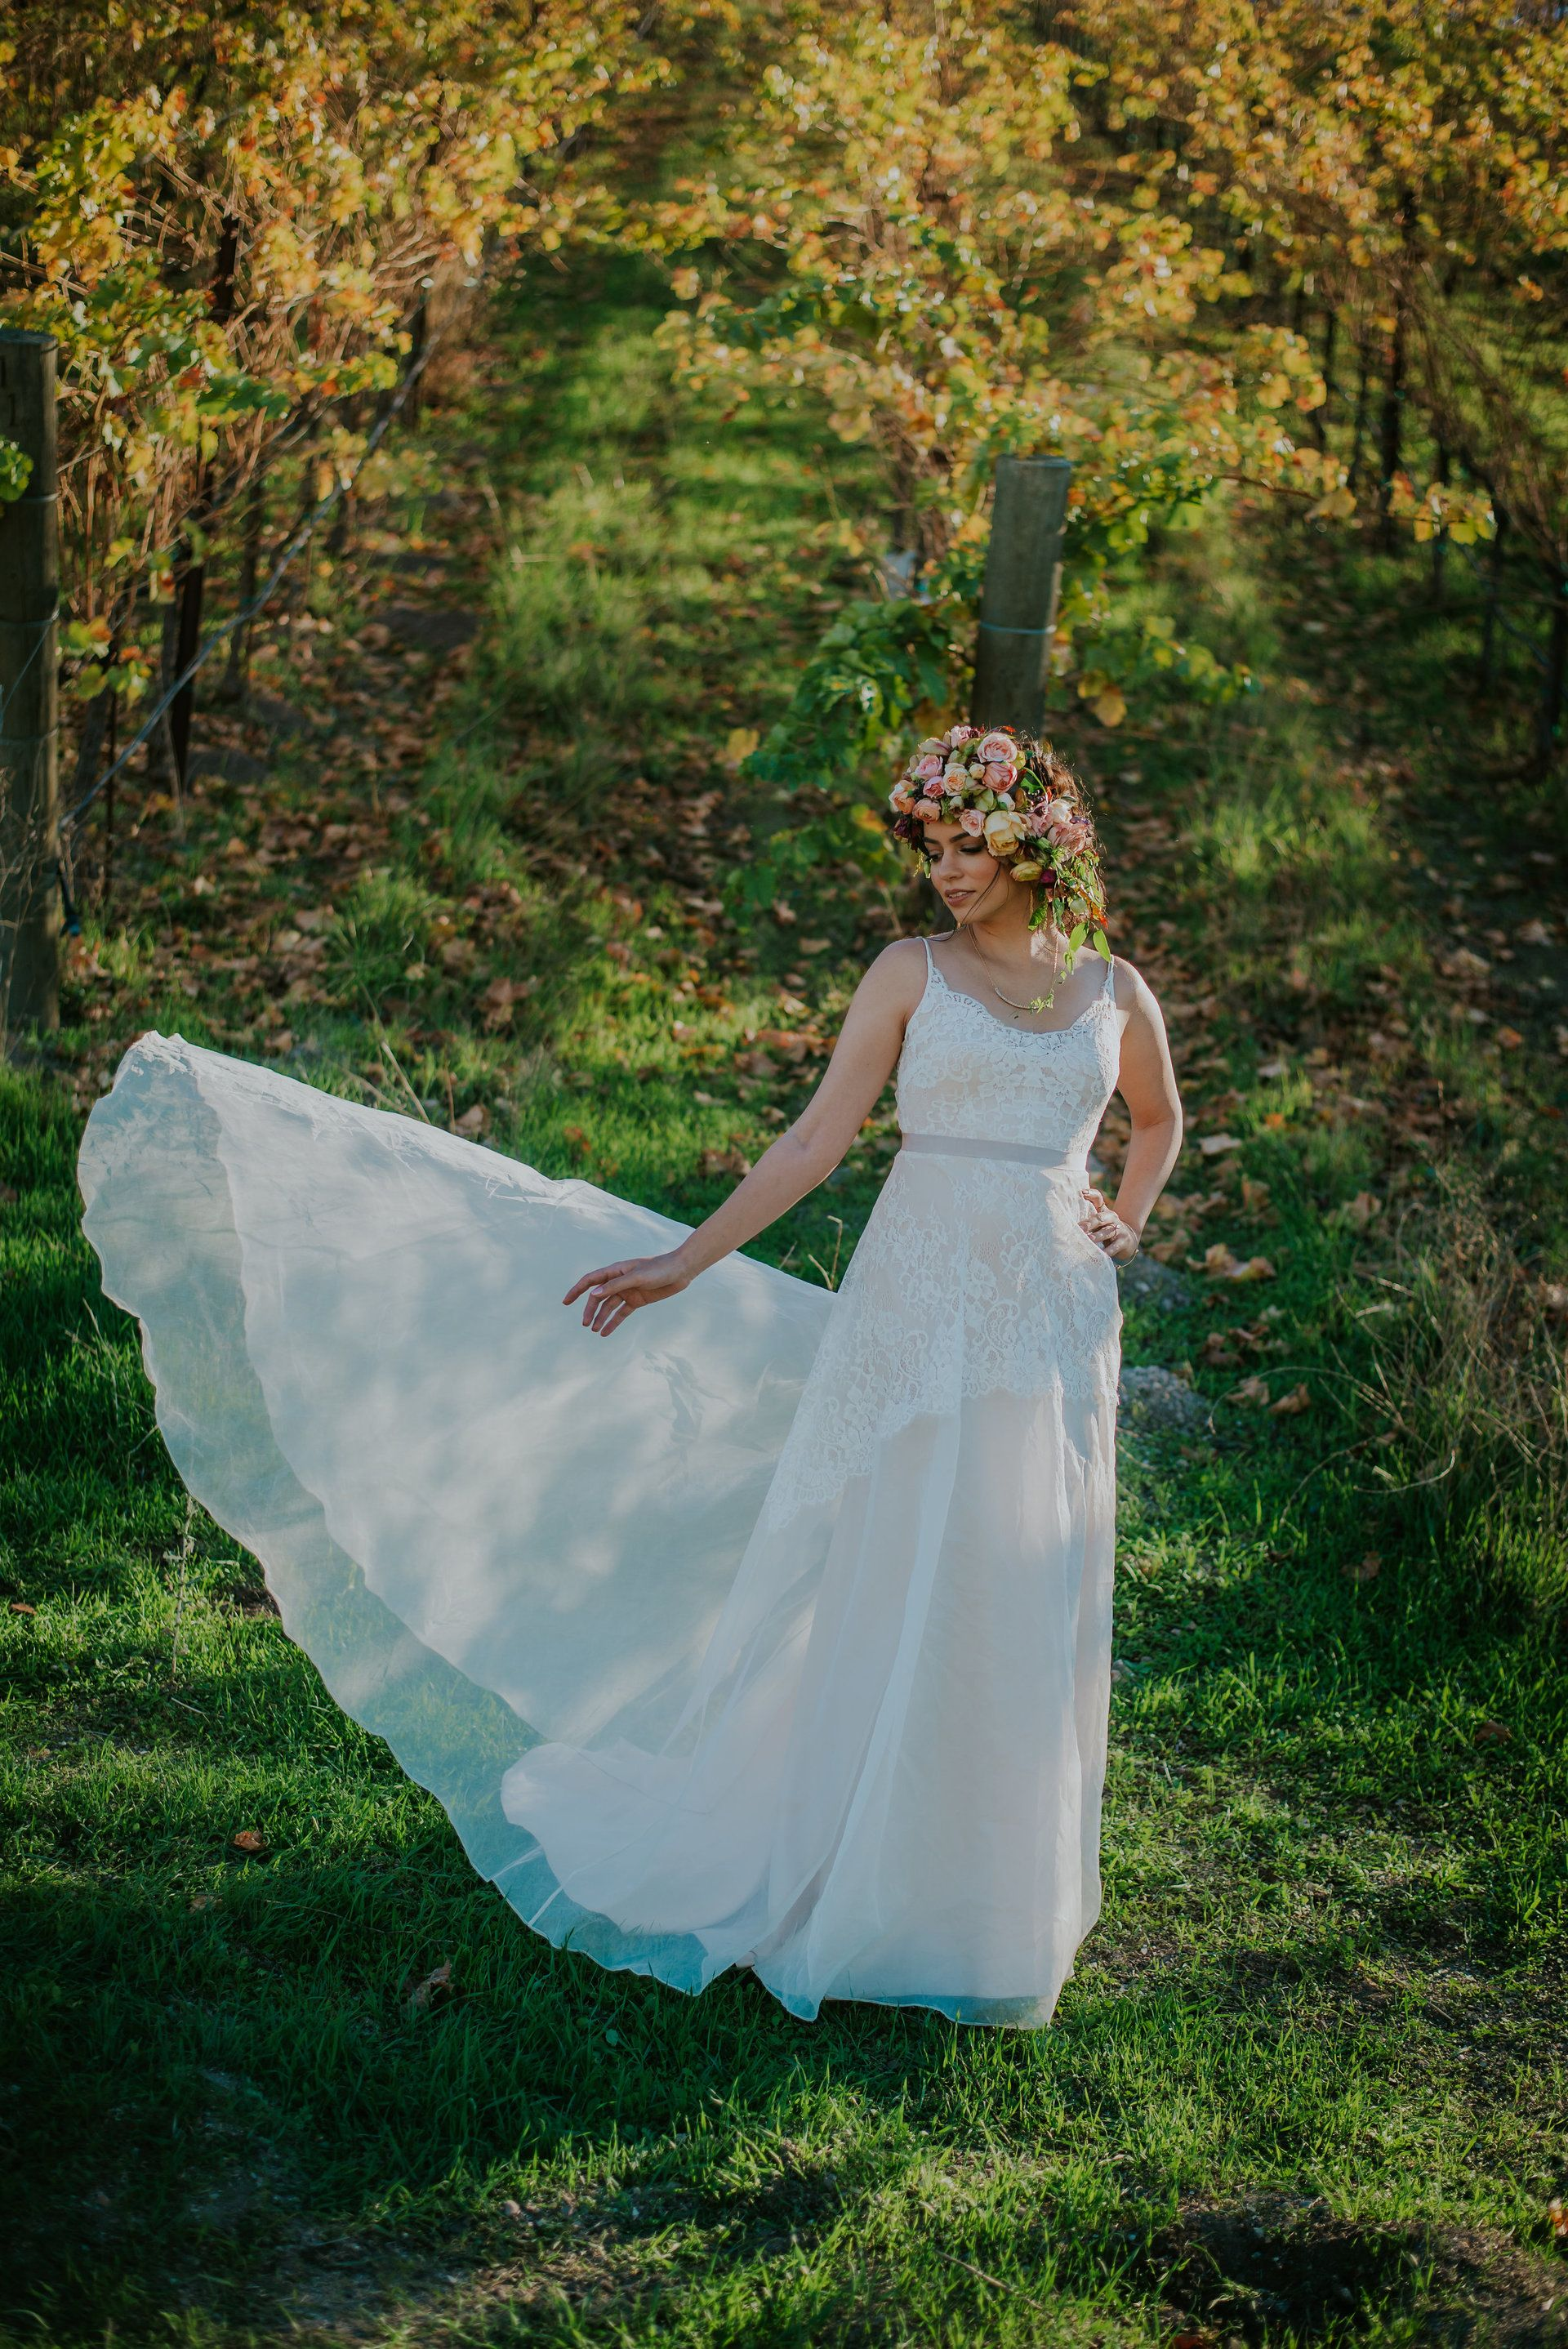 The Smarter Way to Wed | Pretty wedding dresses, Wedding dress and ...